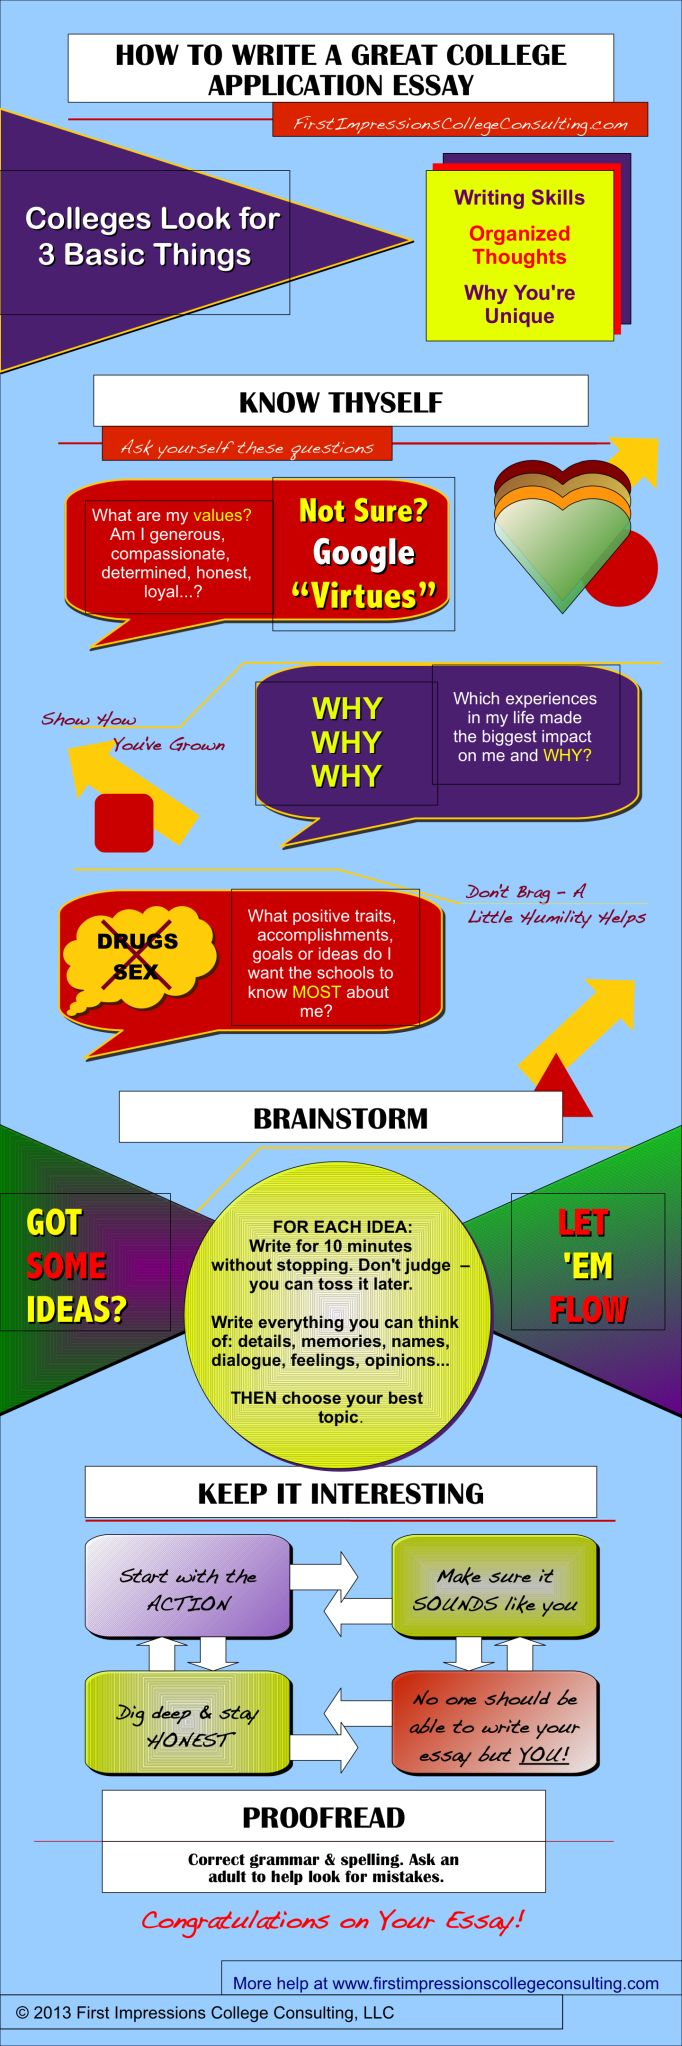 best ideas about essay writing essay writing here it is my first infographic i won t tell you how long it took me but it was worth it enjoy sharon epstein is owner of first impressions college